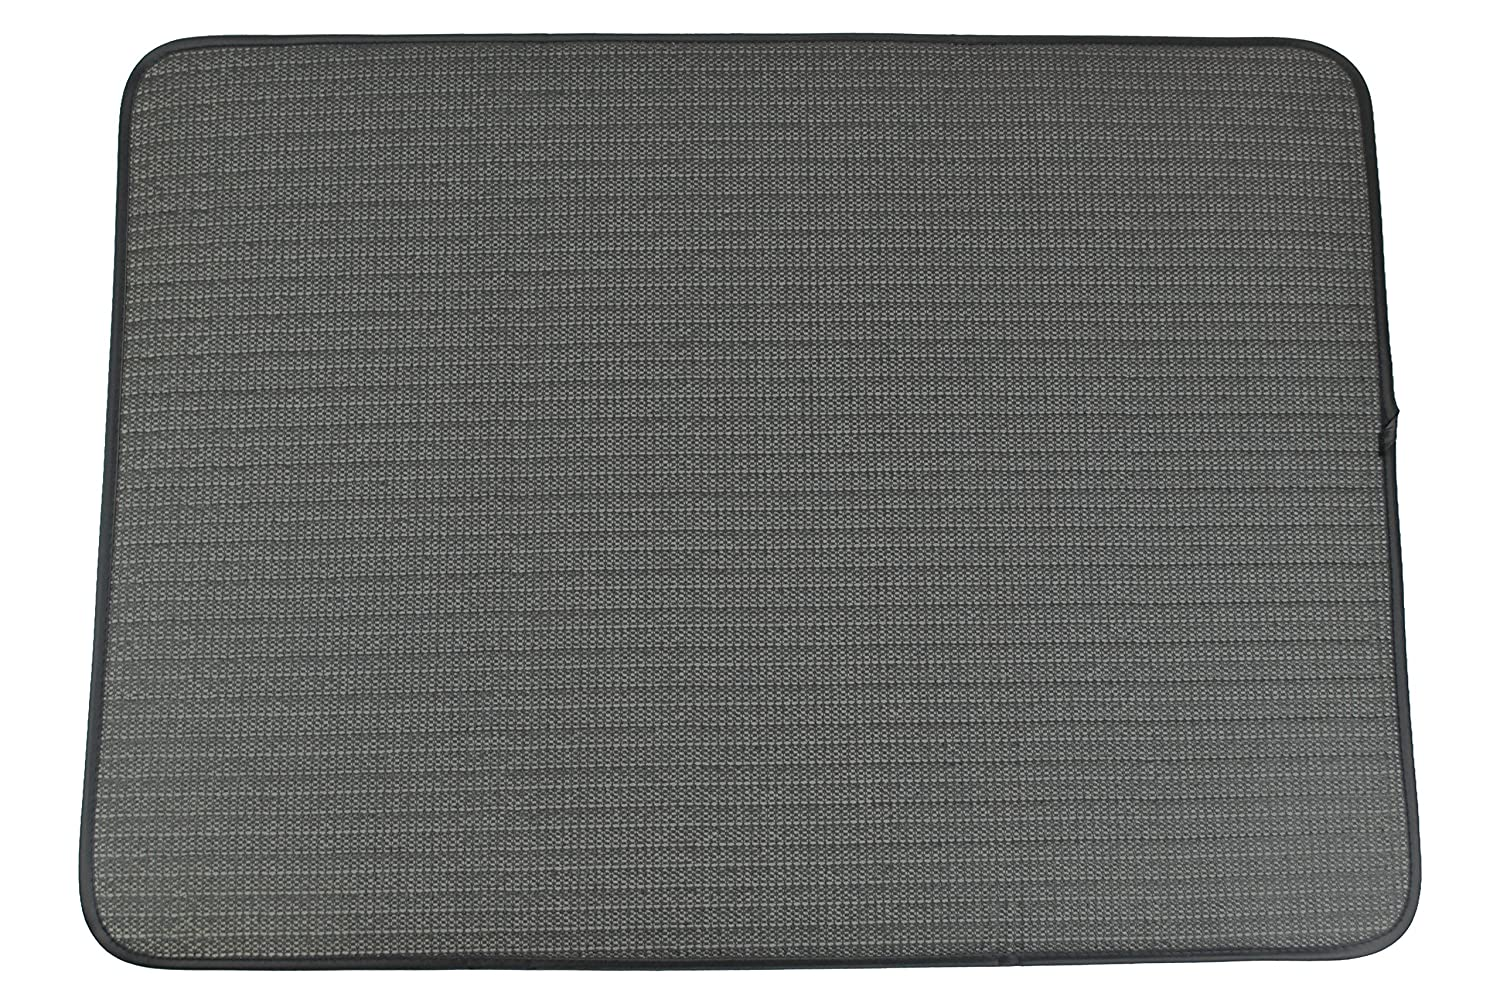 Rubber mats dog run - Amazon Com Dii Bone Dry Under The Cage Non Slip Non Scratch Cage Mat For Kennels Or Crates 30x45 Xx Large Gray Stripe Pet Supplies